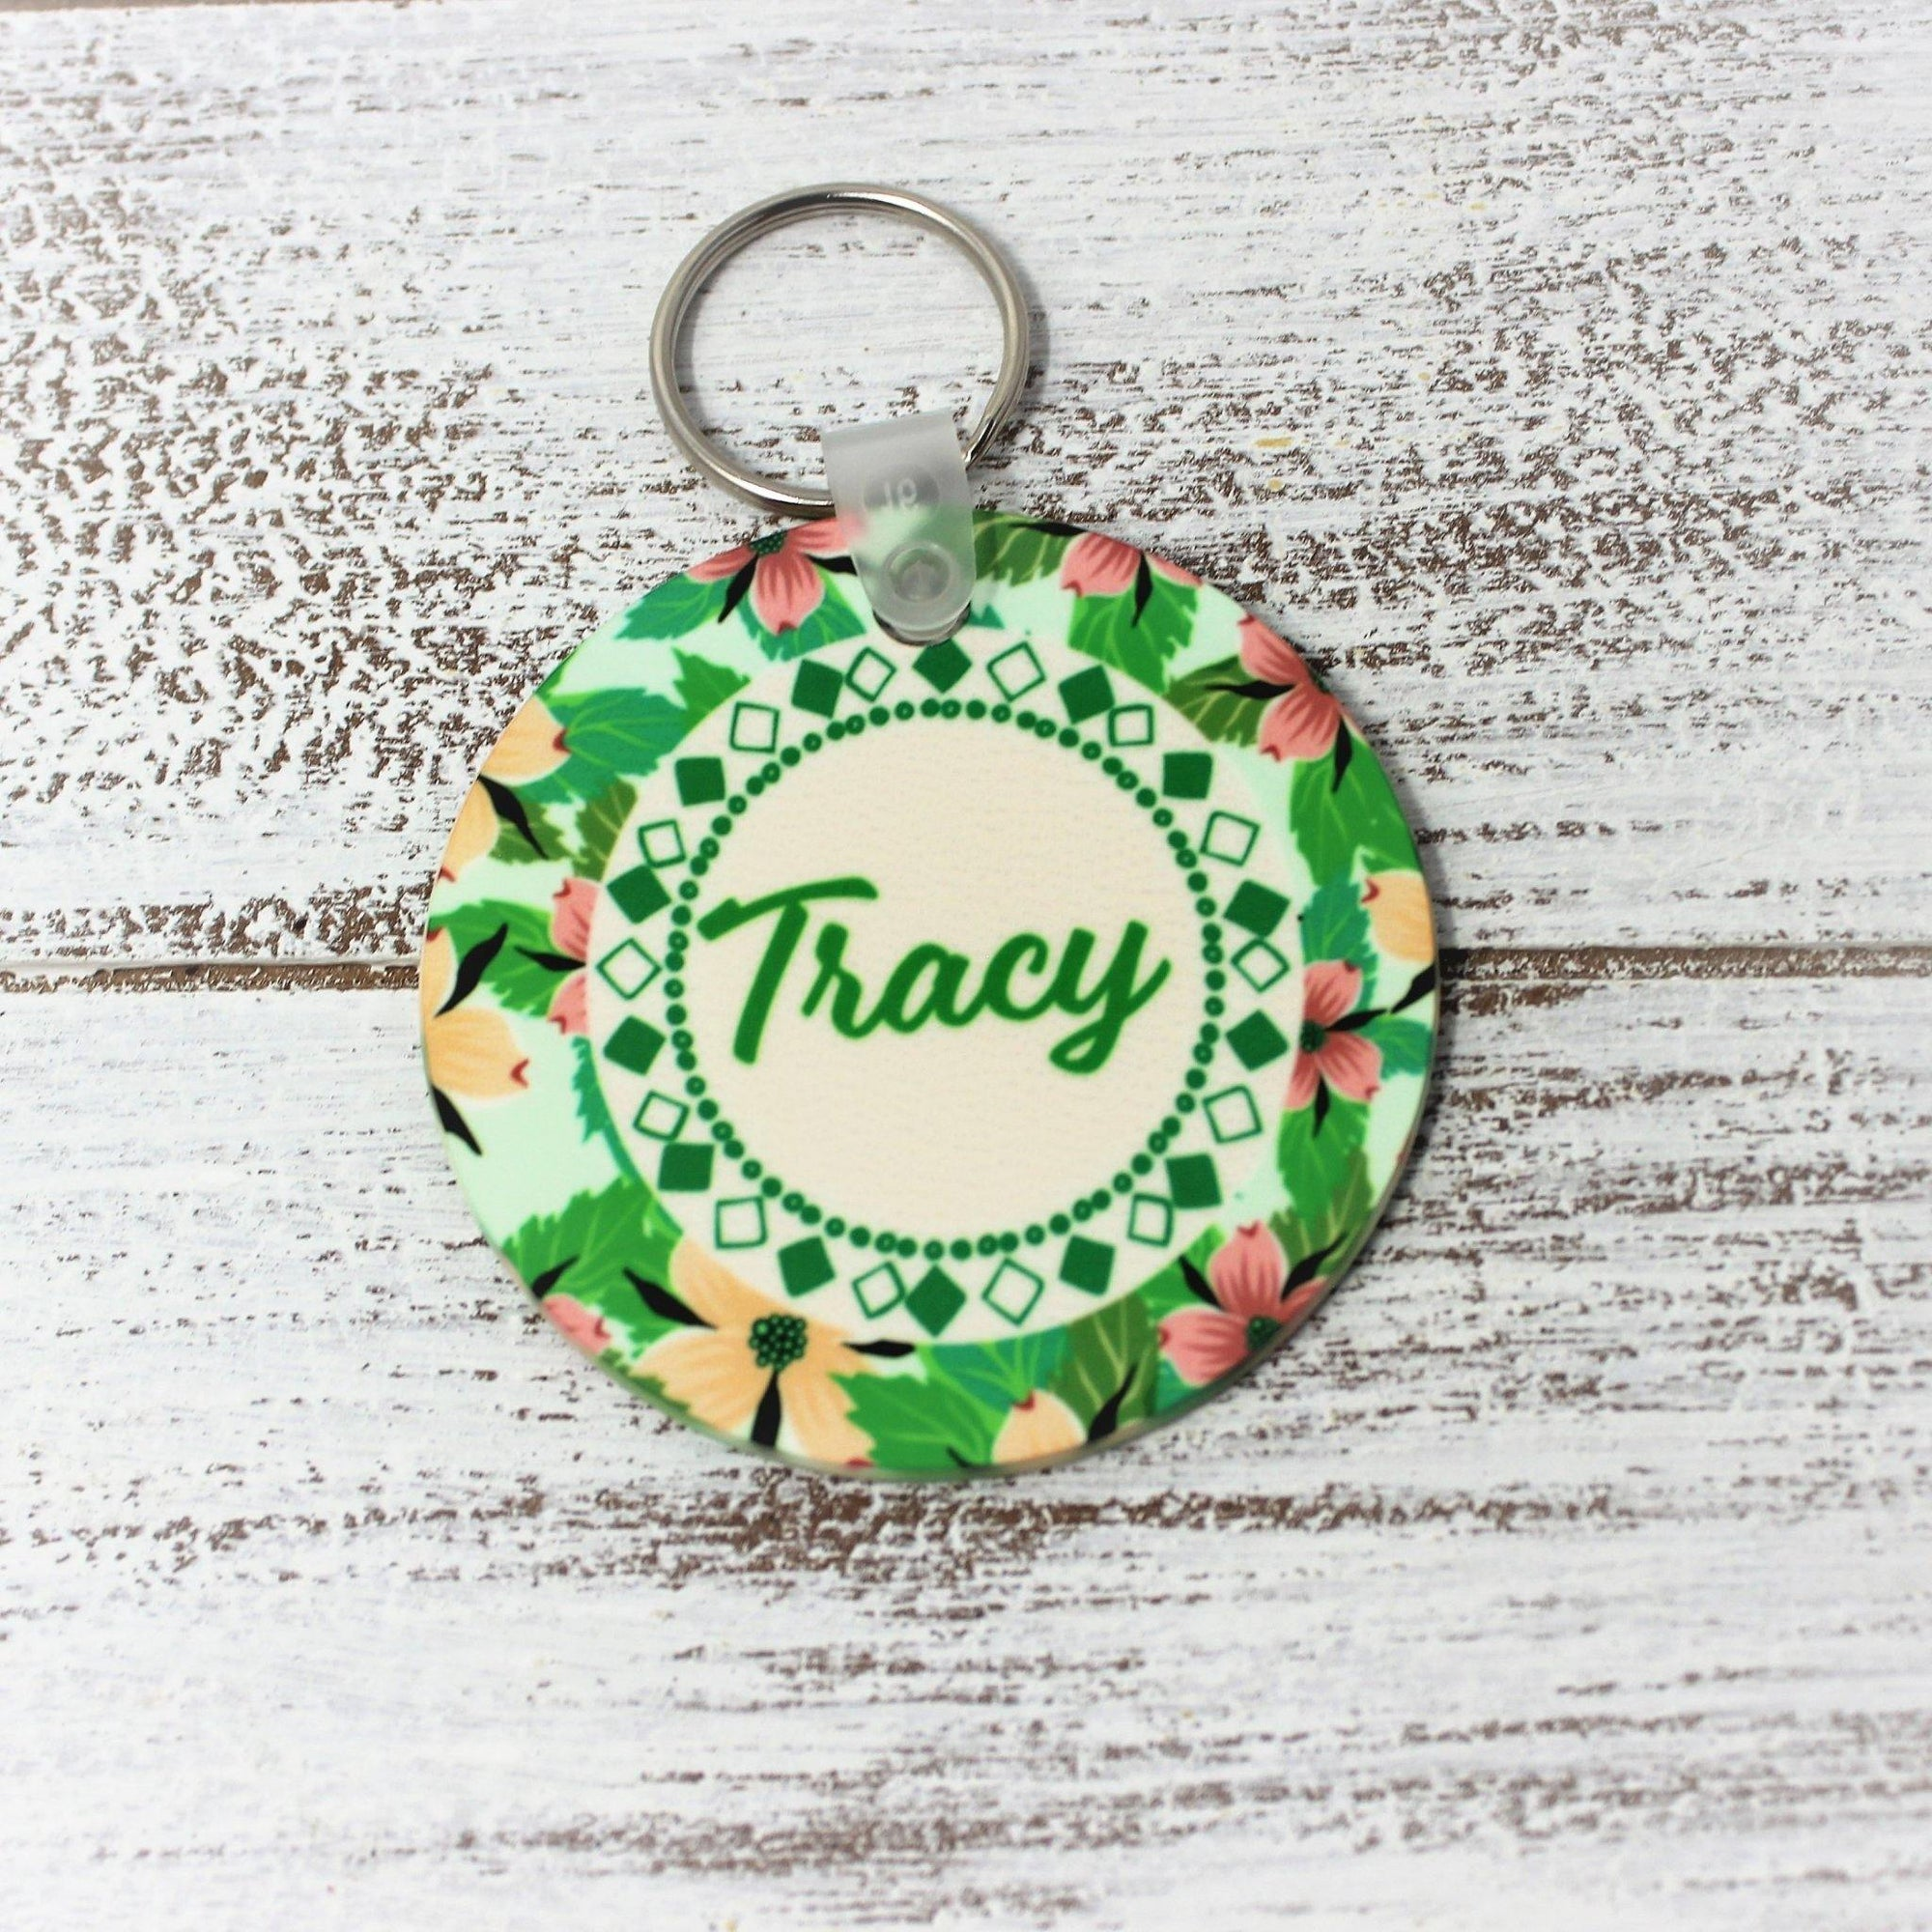 Keychains | Monogrammed Key Chain | Personalized Key Chain | Floral Design | This and That Solutions | Personalized Gifts | Custom Home Décor